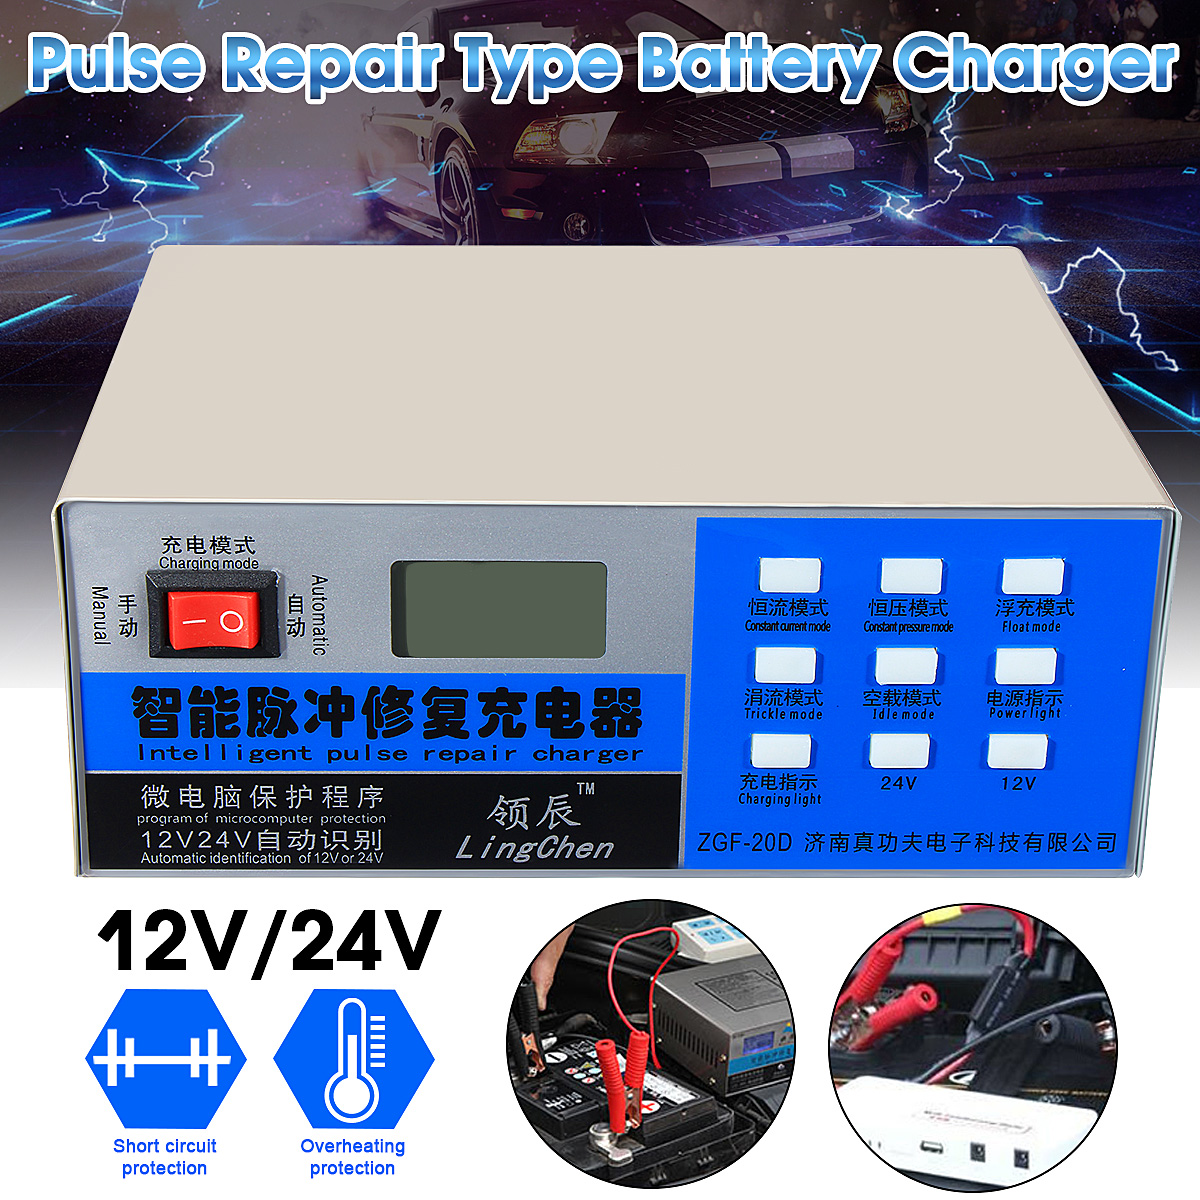 pulse repair type automatic intelligent digital display heat radiator control 220v 6v 12v 120ah car battery charger energy save 12V/24V 200AH Electric Car Dry Wet Battery Charger Automatic Intelligent Pulse Repair Type Car Jump LCD Display